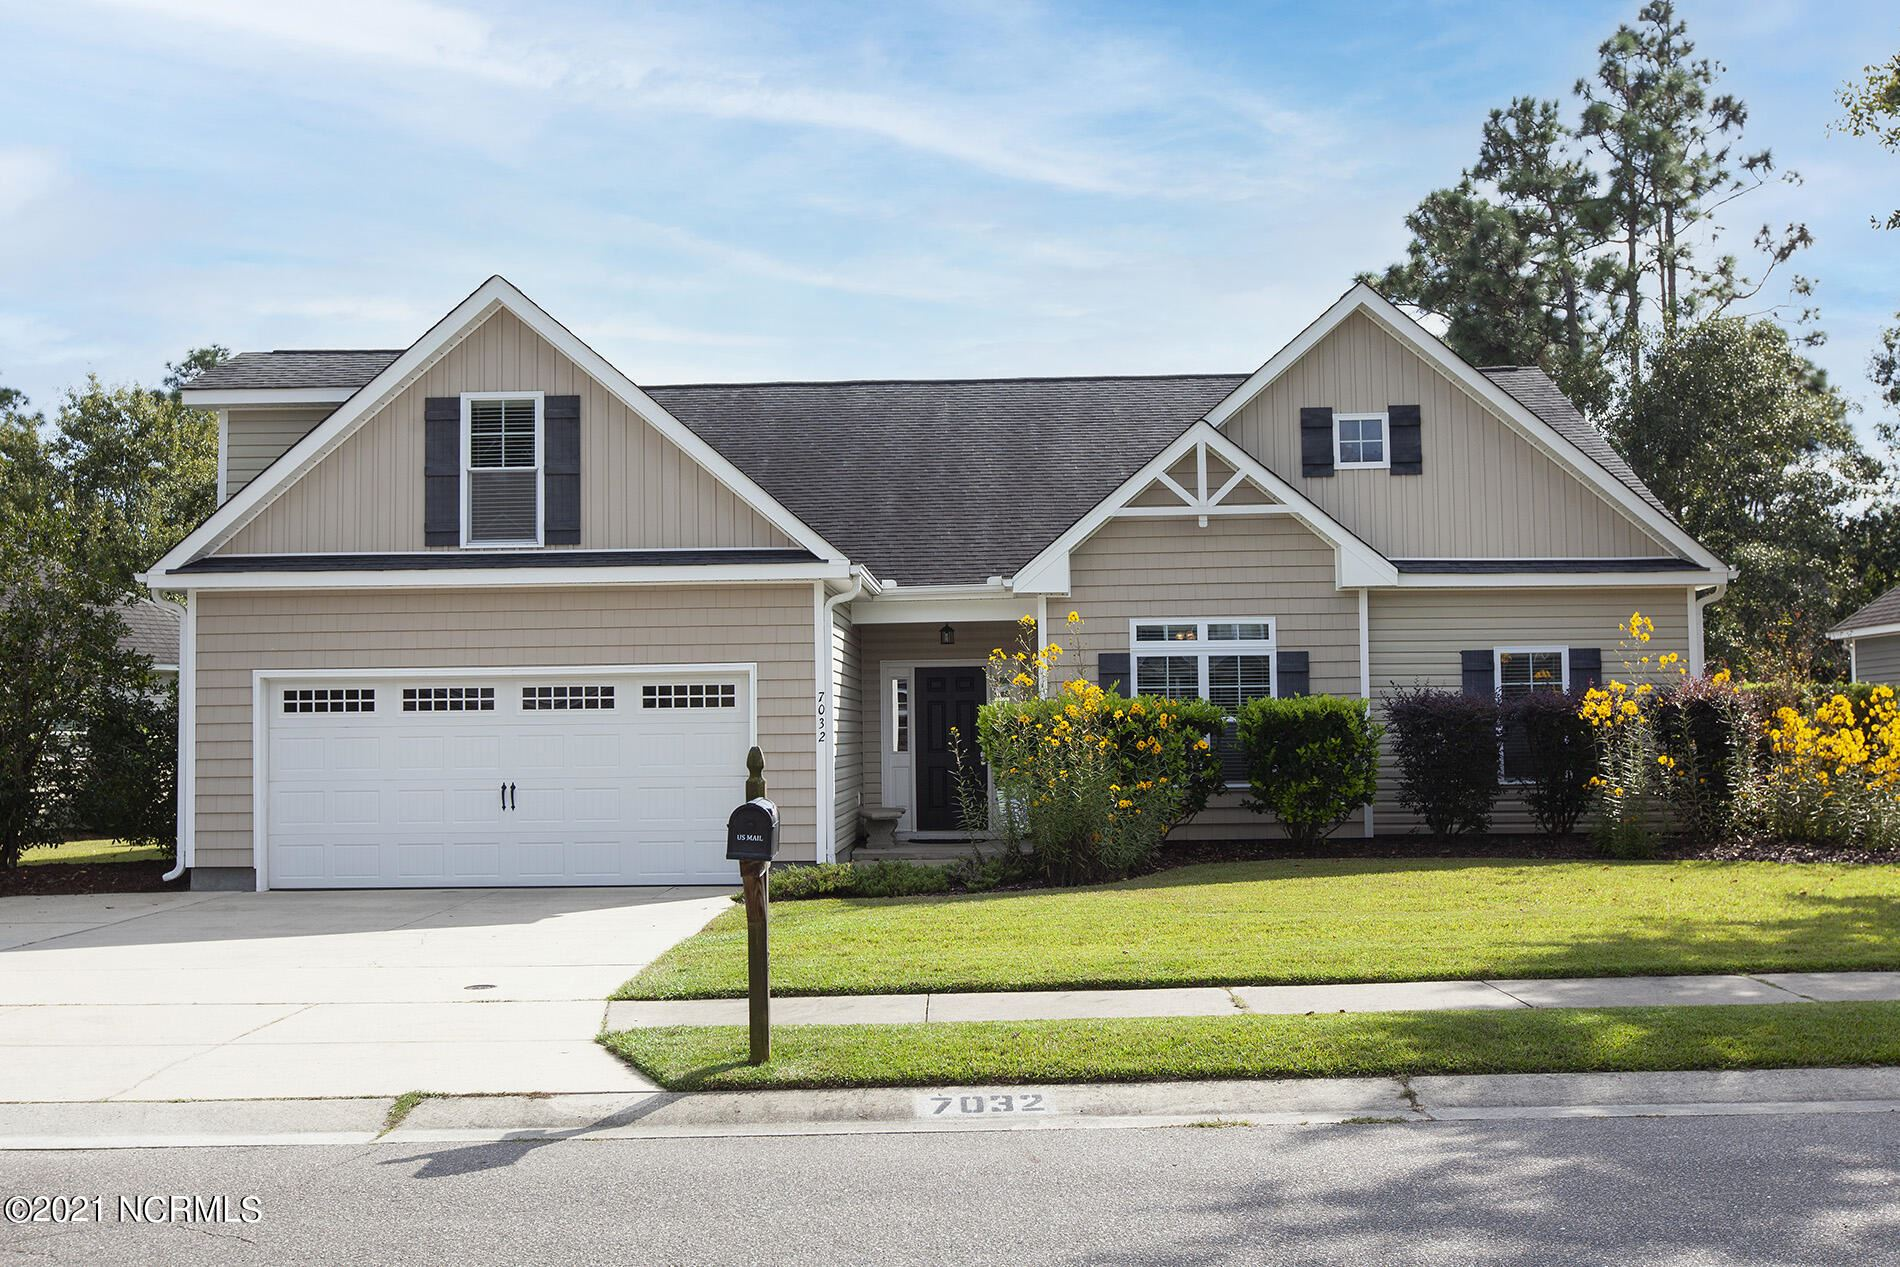 Photo of 7032 Forest Bend Lane, Wilmington, NC 28411 (MLS # 100295381)